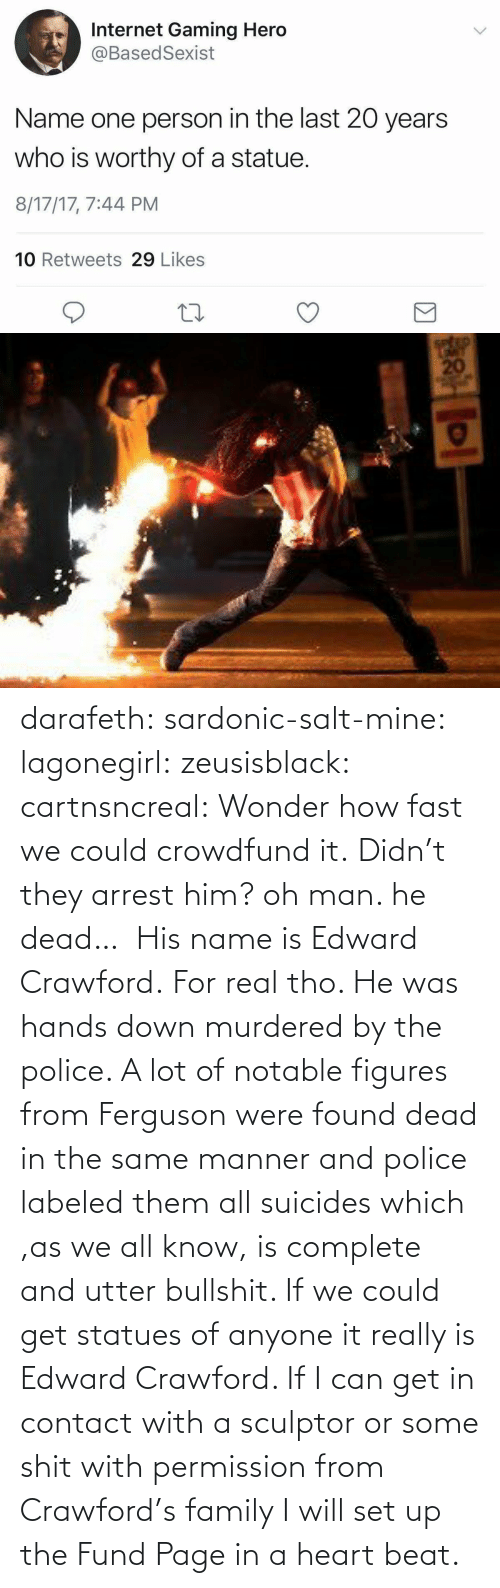 Found: darafeth: sardonic-salt-mine:  lagonegirl:  zeusisblack:  cartnsncreal:   Wonder how fast we could crowdfund it.    Didn't they arrest him?  oh man. he dead…   His name is Edward Crawford.   For real tho. He was hands down murdered by the police. A lot of notable figures from Ferguson were found dead in the same manner and police labeled them all suicides which ,as we all know, is complete and utter bullshit.  If we could get statues of anyone it really is Edward Crawford. If I can get in contact with a sculptor or some shit with permission from Crawford's family I will set up the Fund Page in a heart beat.